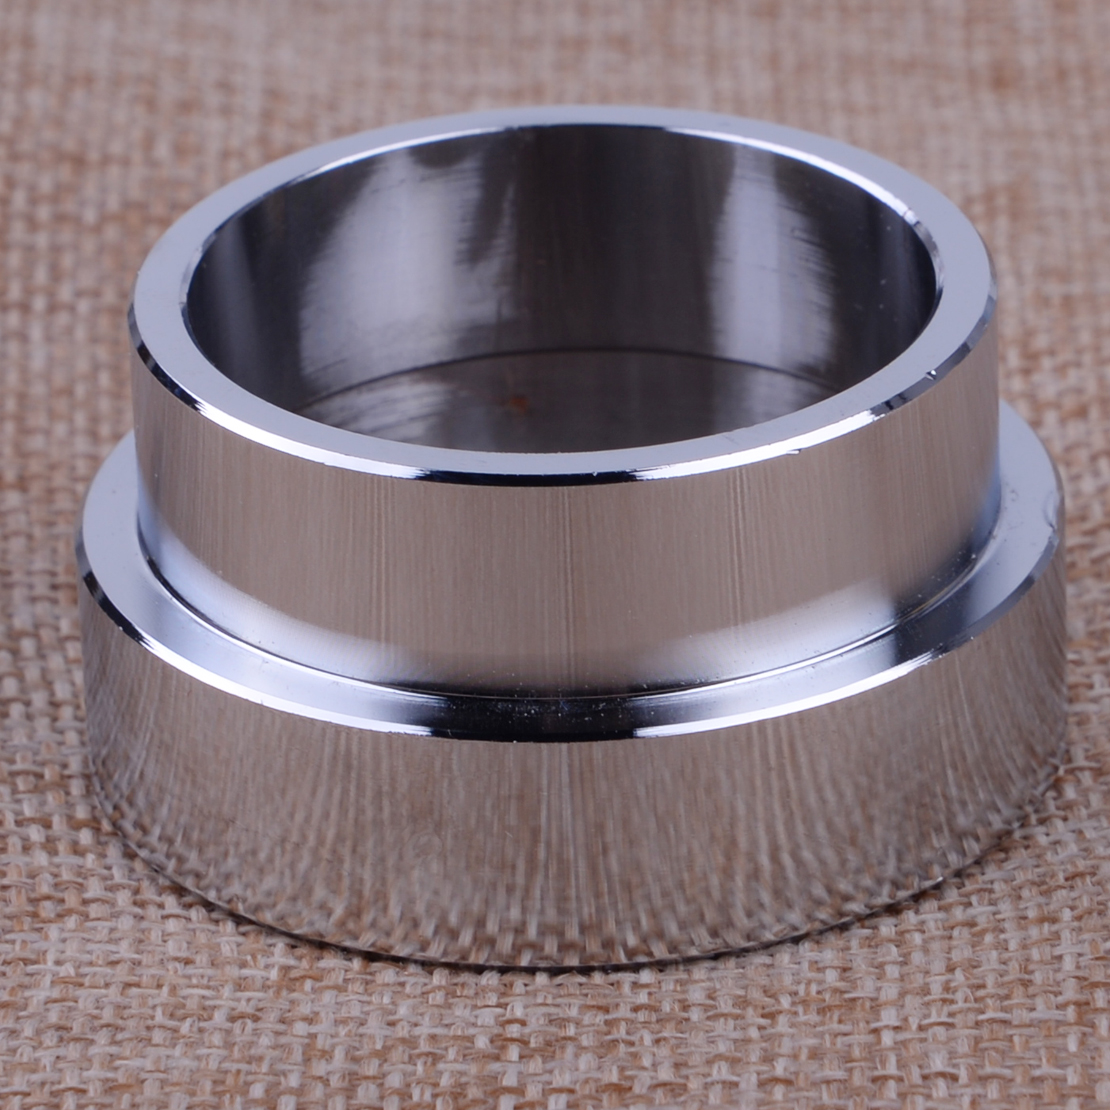 Iron Adapter Spacer TH350 TH400 Conversion Swap For LS Based Engines 98-04